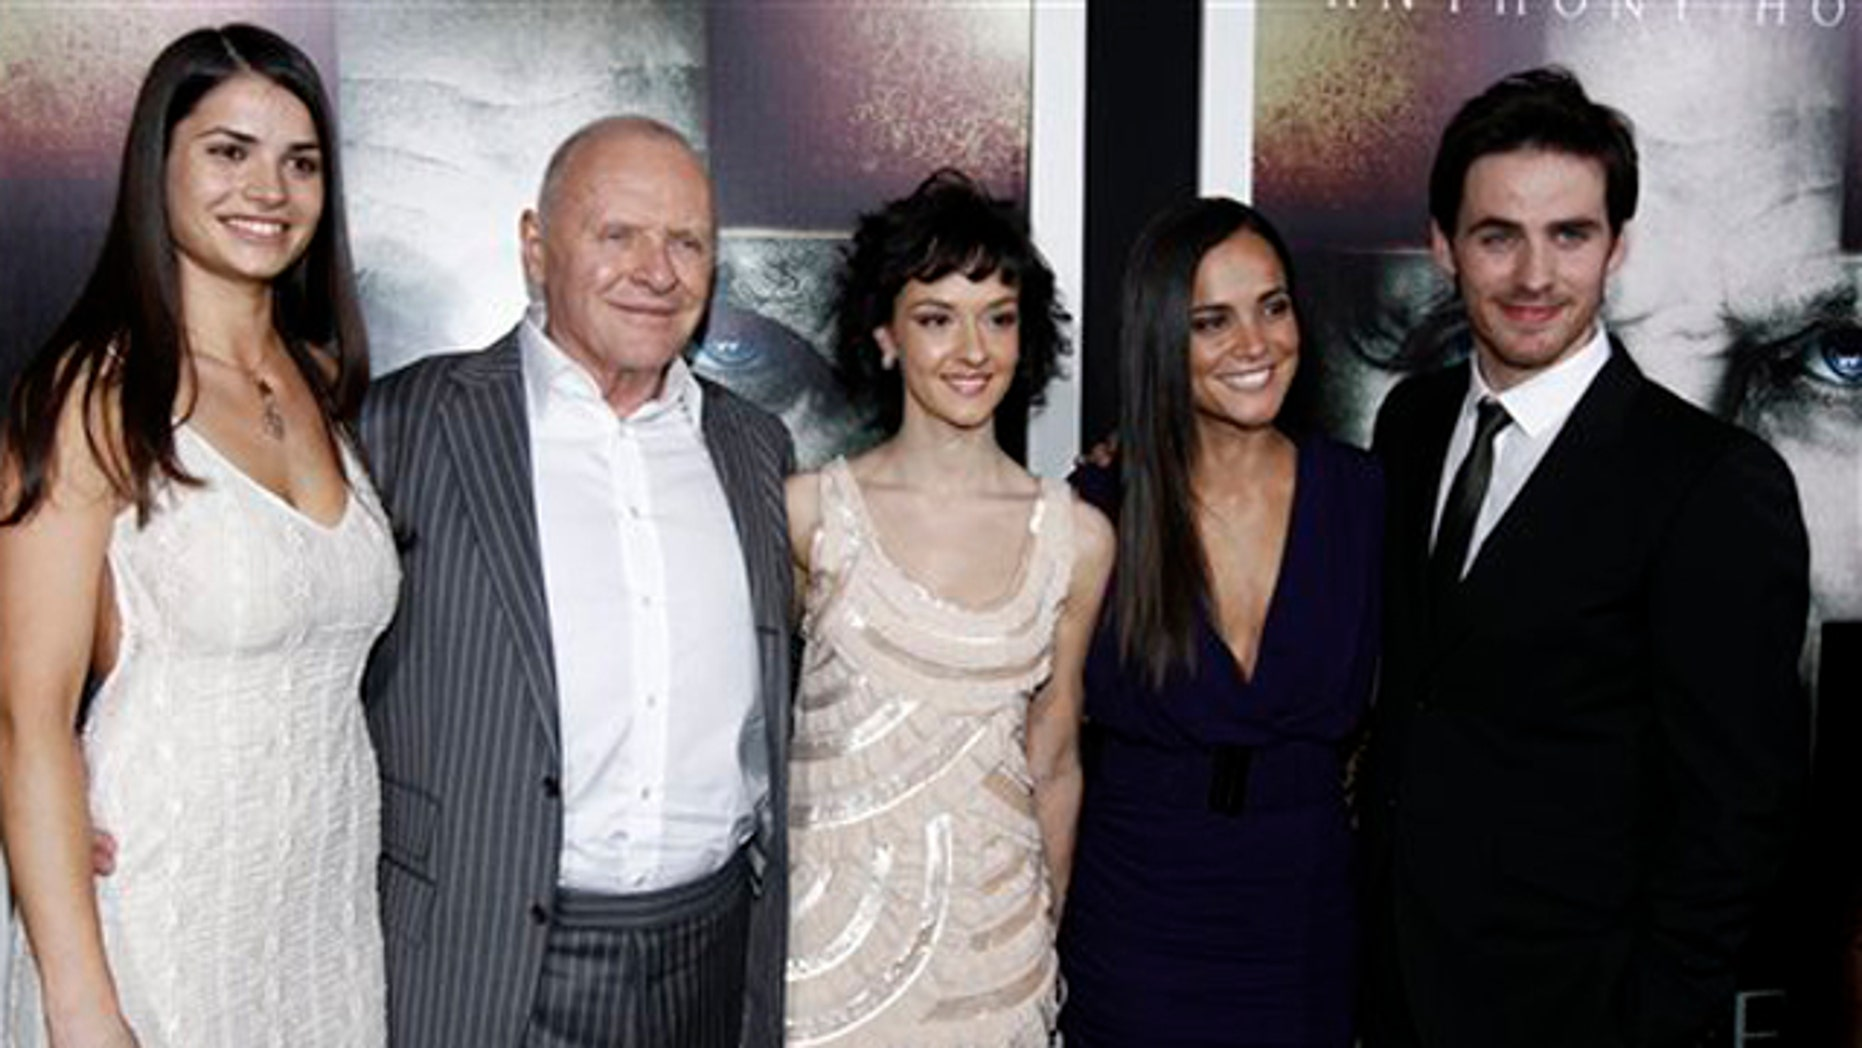 """Jan. 26, 2011: From left, cast members Marija Karan, Anthony Hopkins, Marta Gastini, Alice Braga, and Colin O'Donoghue pose together at the premiere of """"The Rite"""" in Los Angeles."""